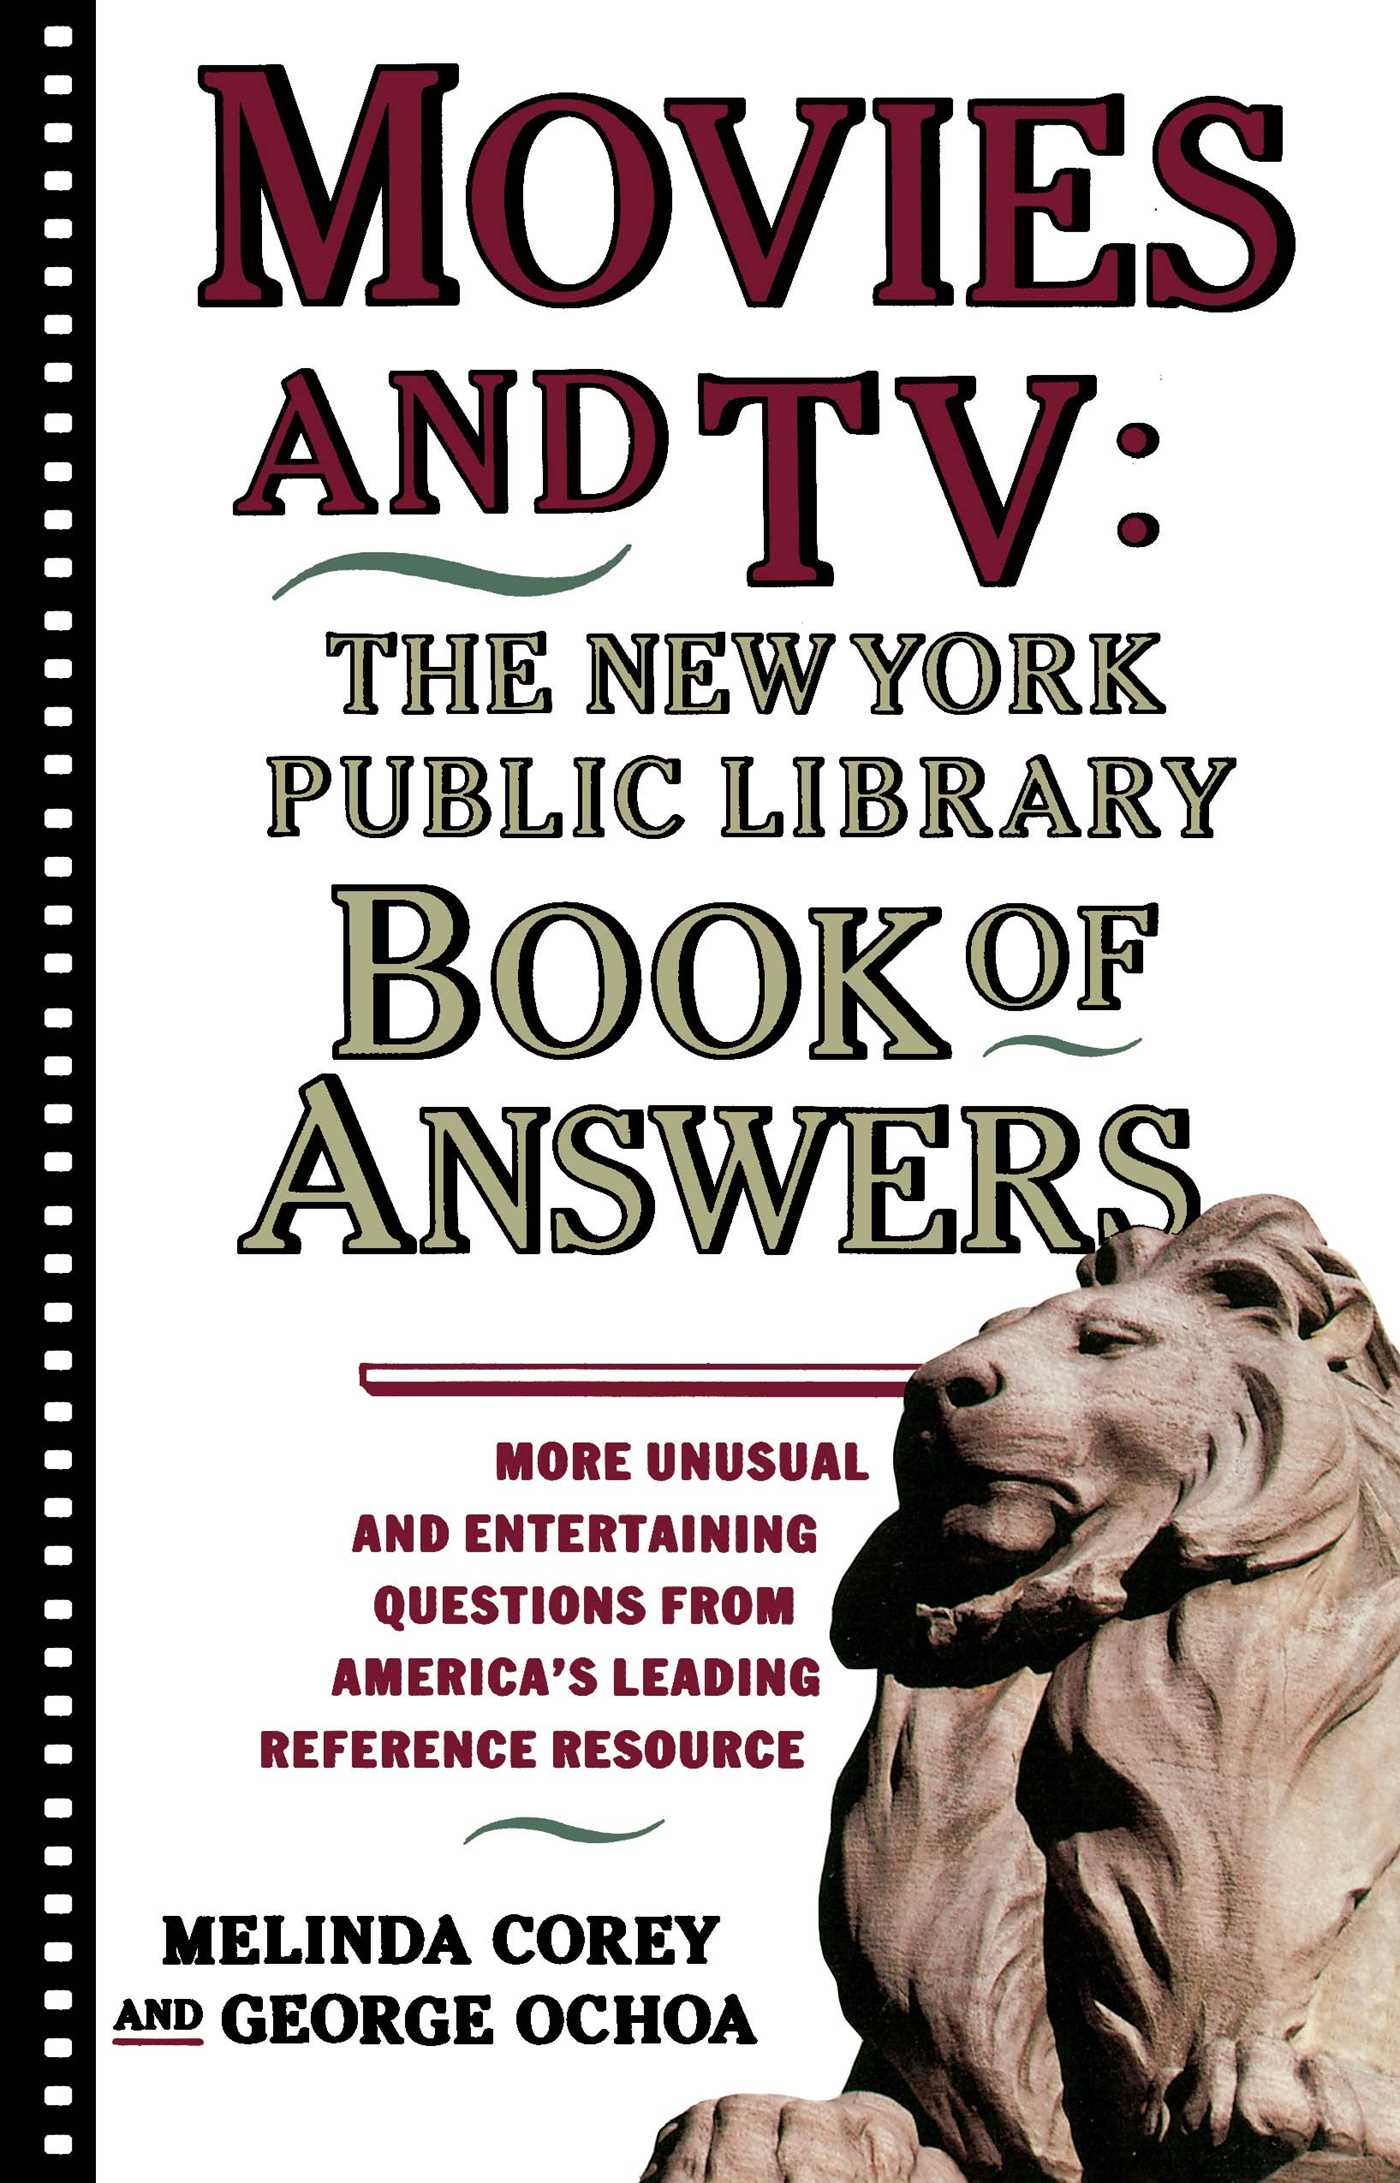 Movies and tv the new york public library book of answers 9780671775384 hr